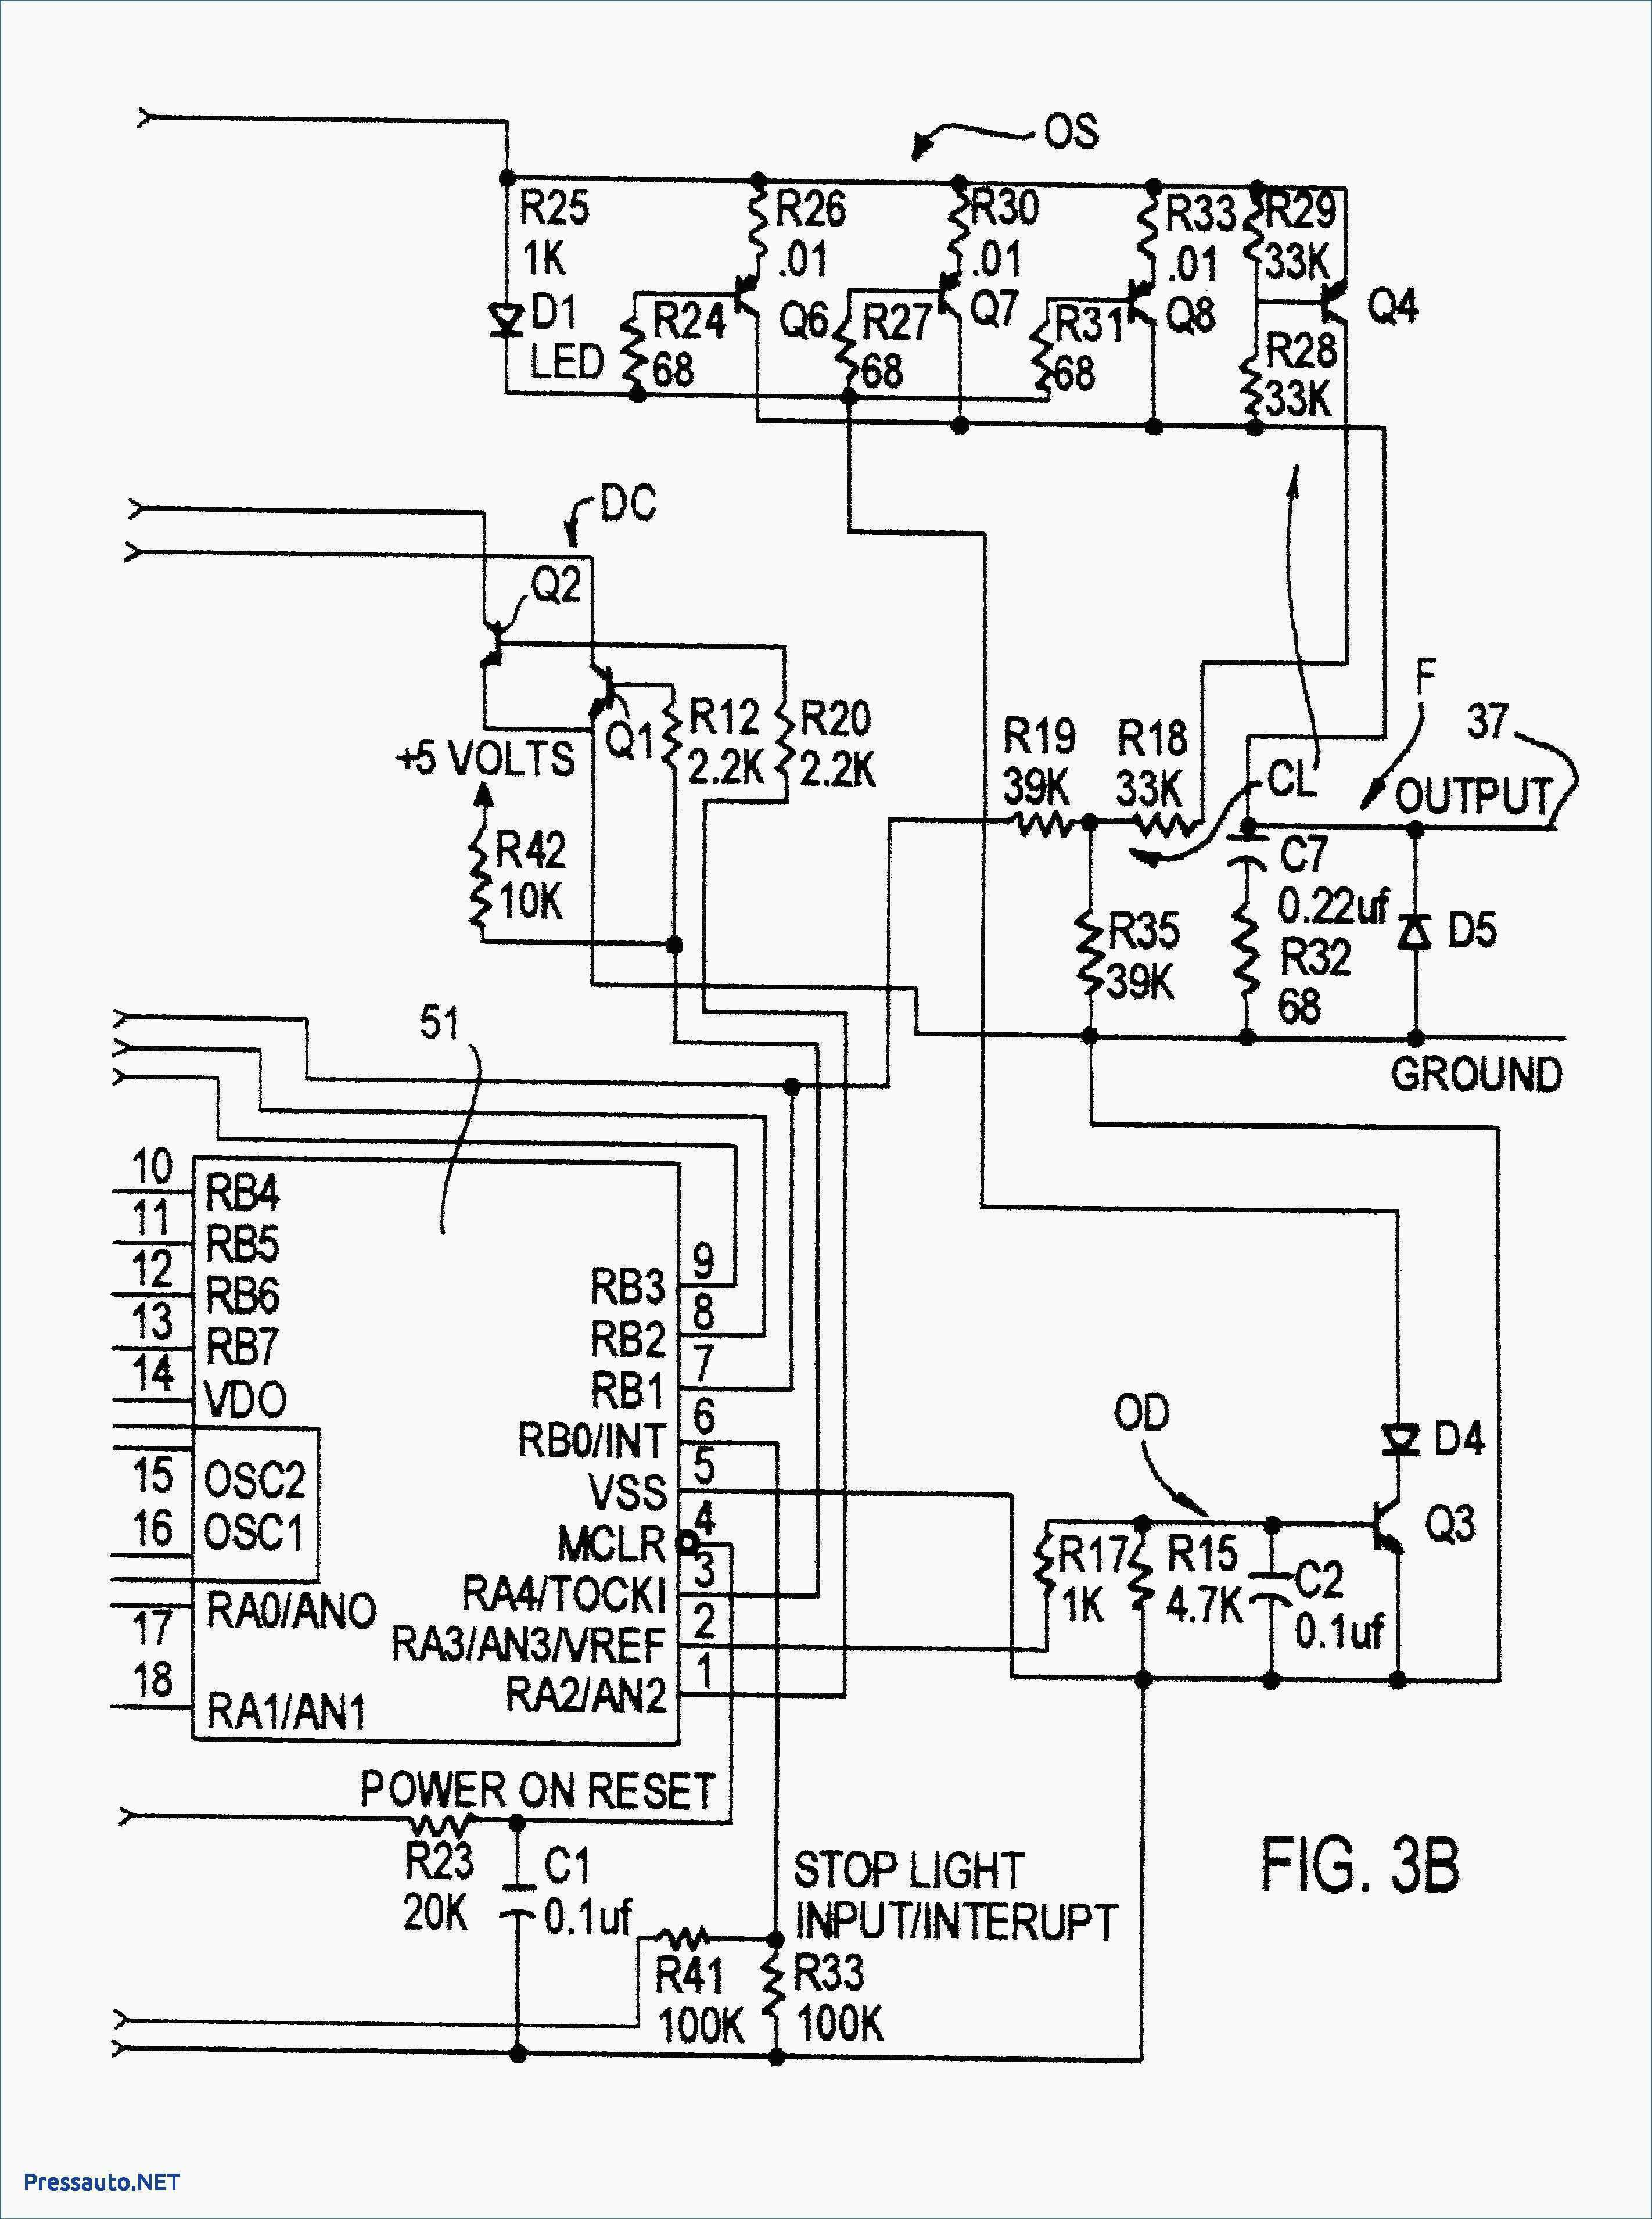 Reese Hitch Wiring Diagram - All Wiring Diagram - Reese Trailer Hitch Wiring Diagram